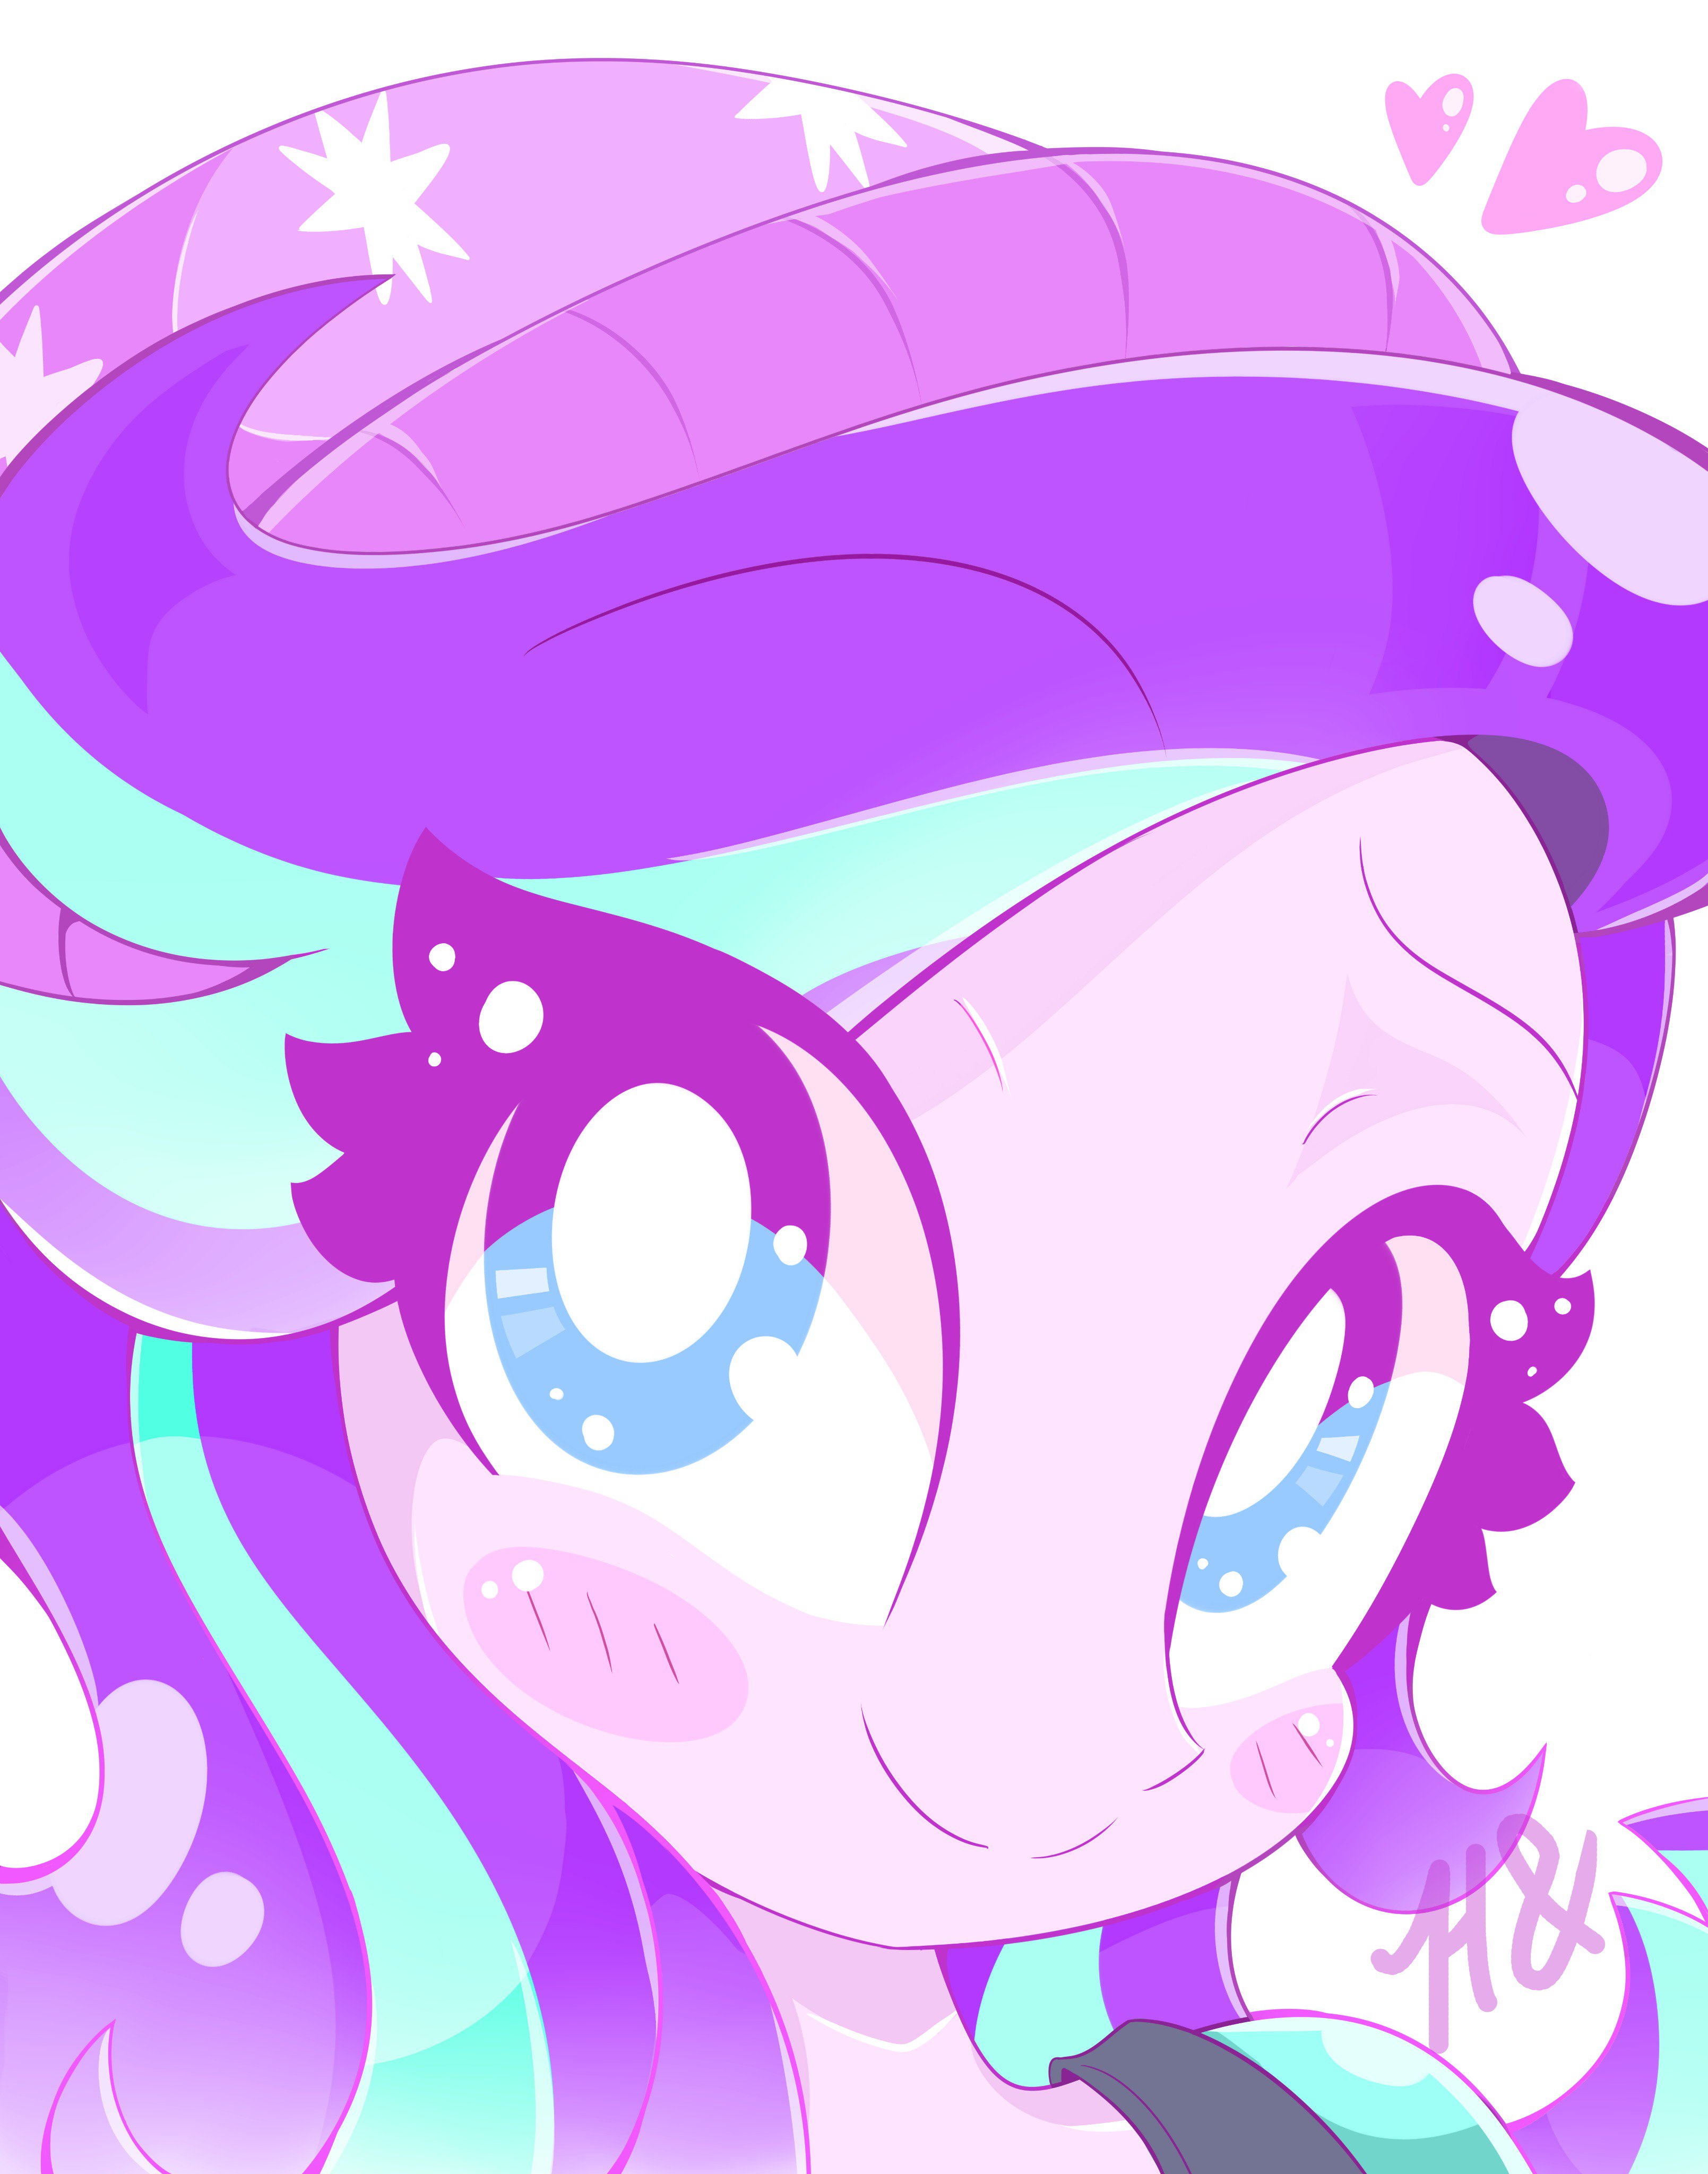 1547243  safe artist colon hungrysohma16 starlight glimmer equestria girls mirror magic movie magic spoiler colon eqg specials beanie blushing bust cut